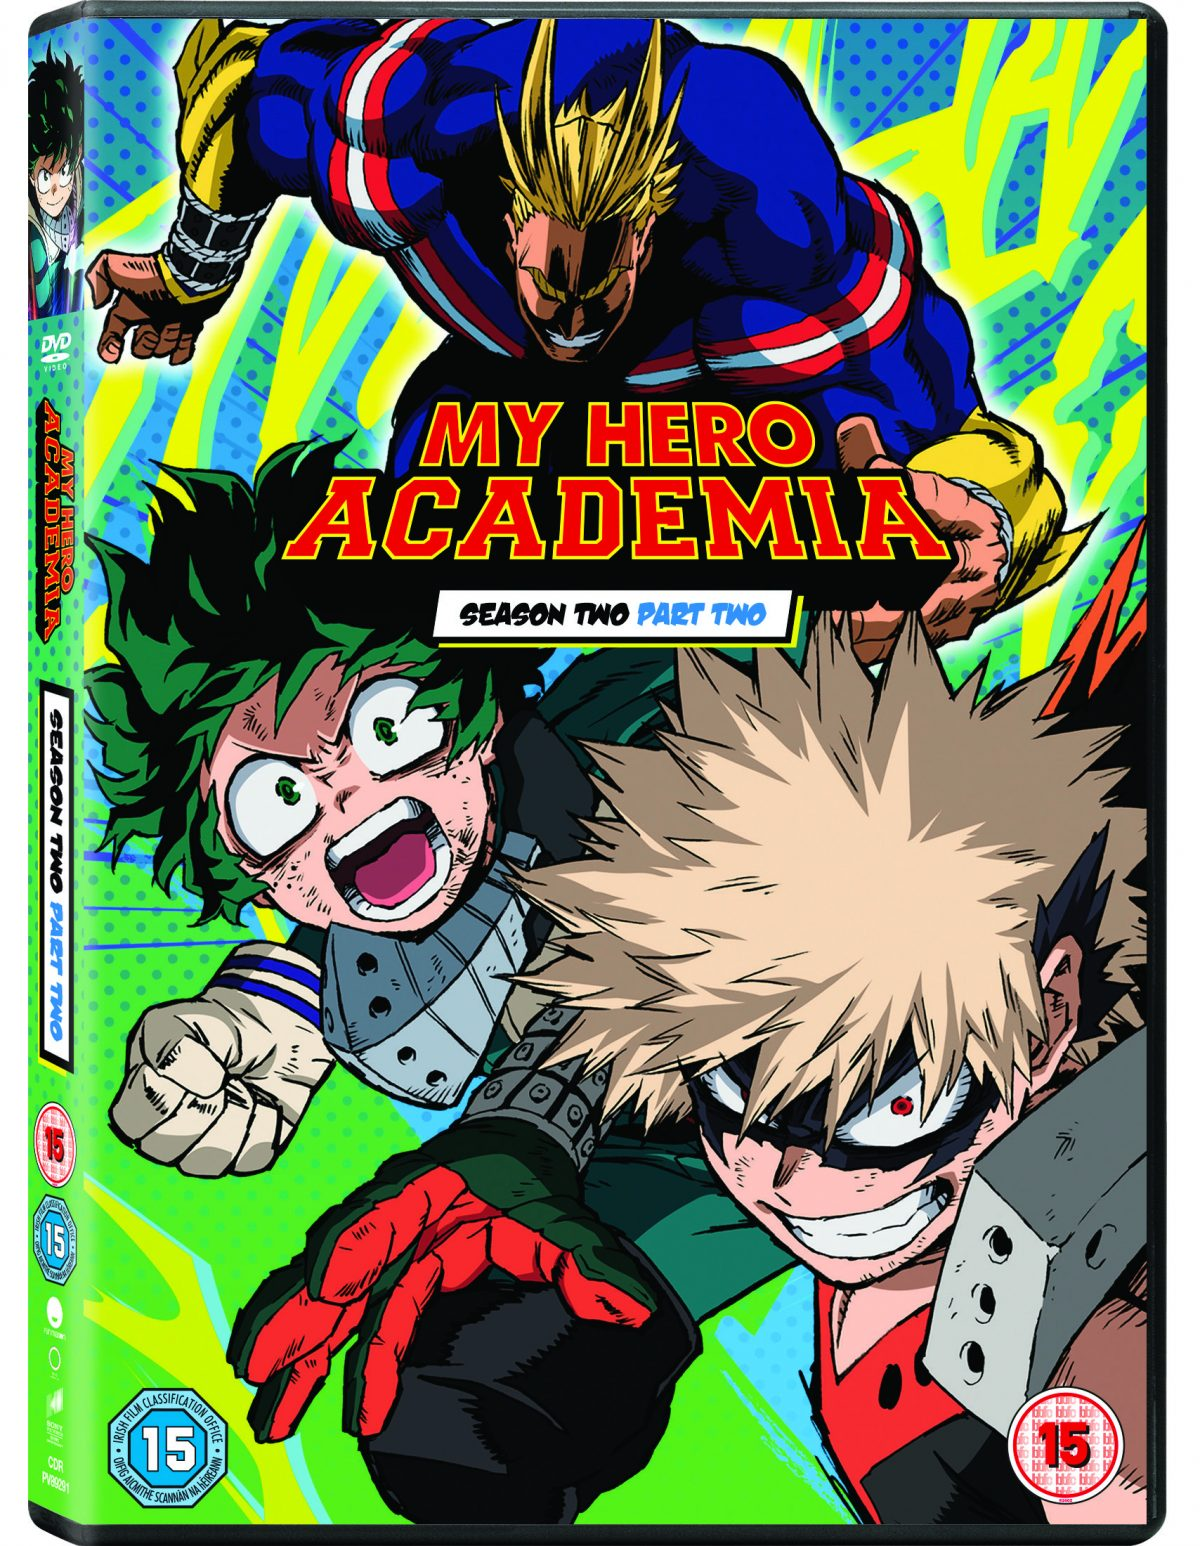 Blazing Minds and Fetch Dynamic LTD to bring you the chance to win a DVD of My Hero Academia Season 2, Part 2 On DVD and Blu-ray™ June 11.